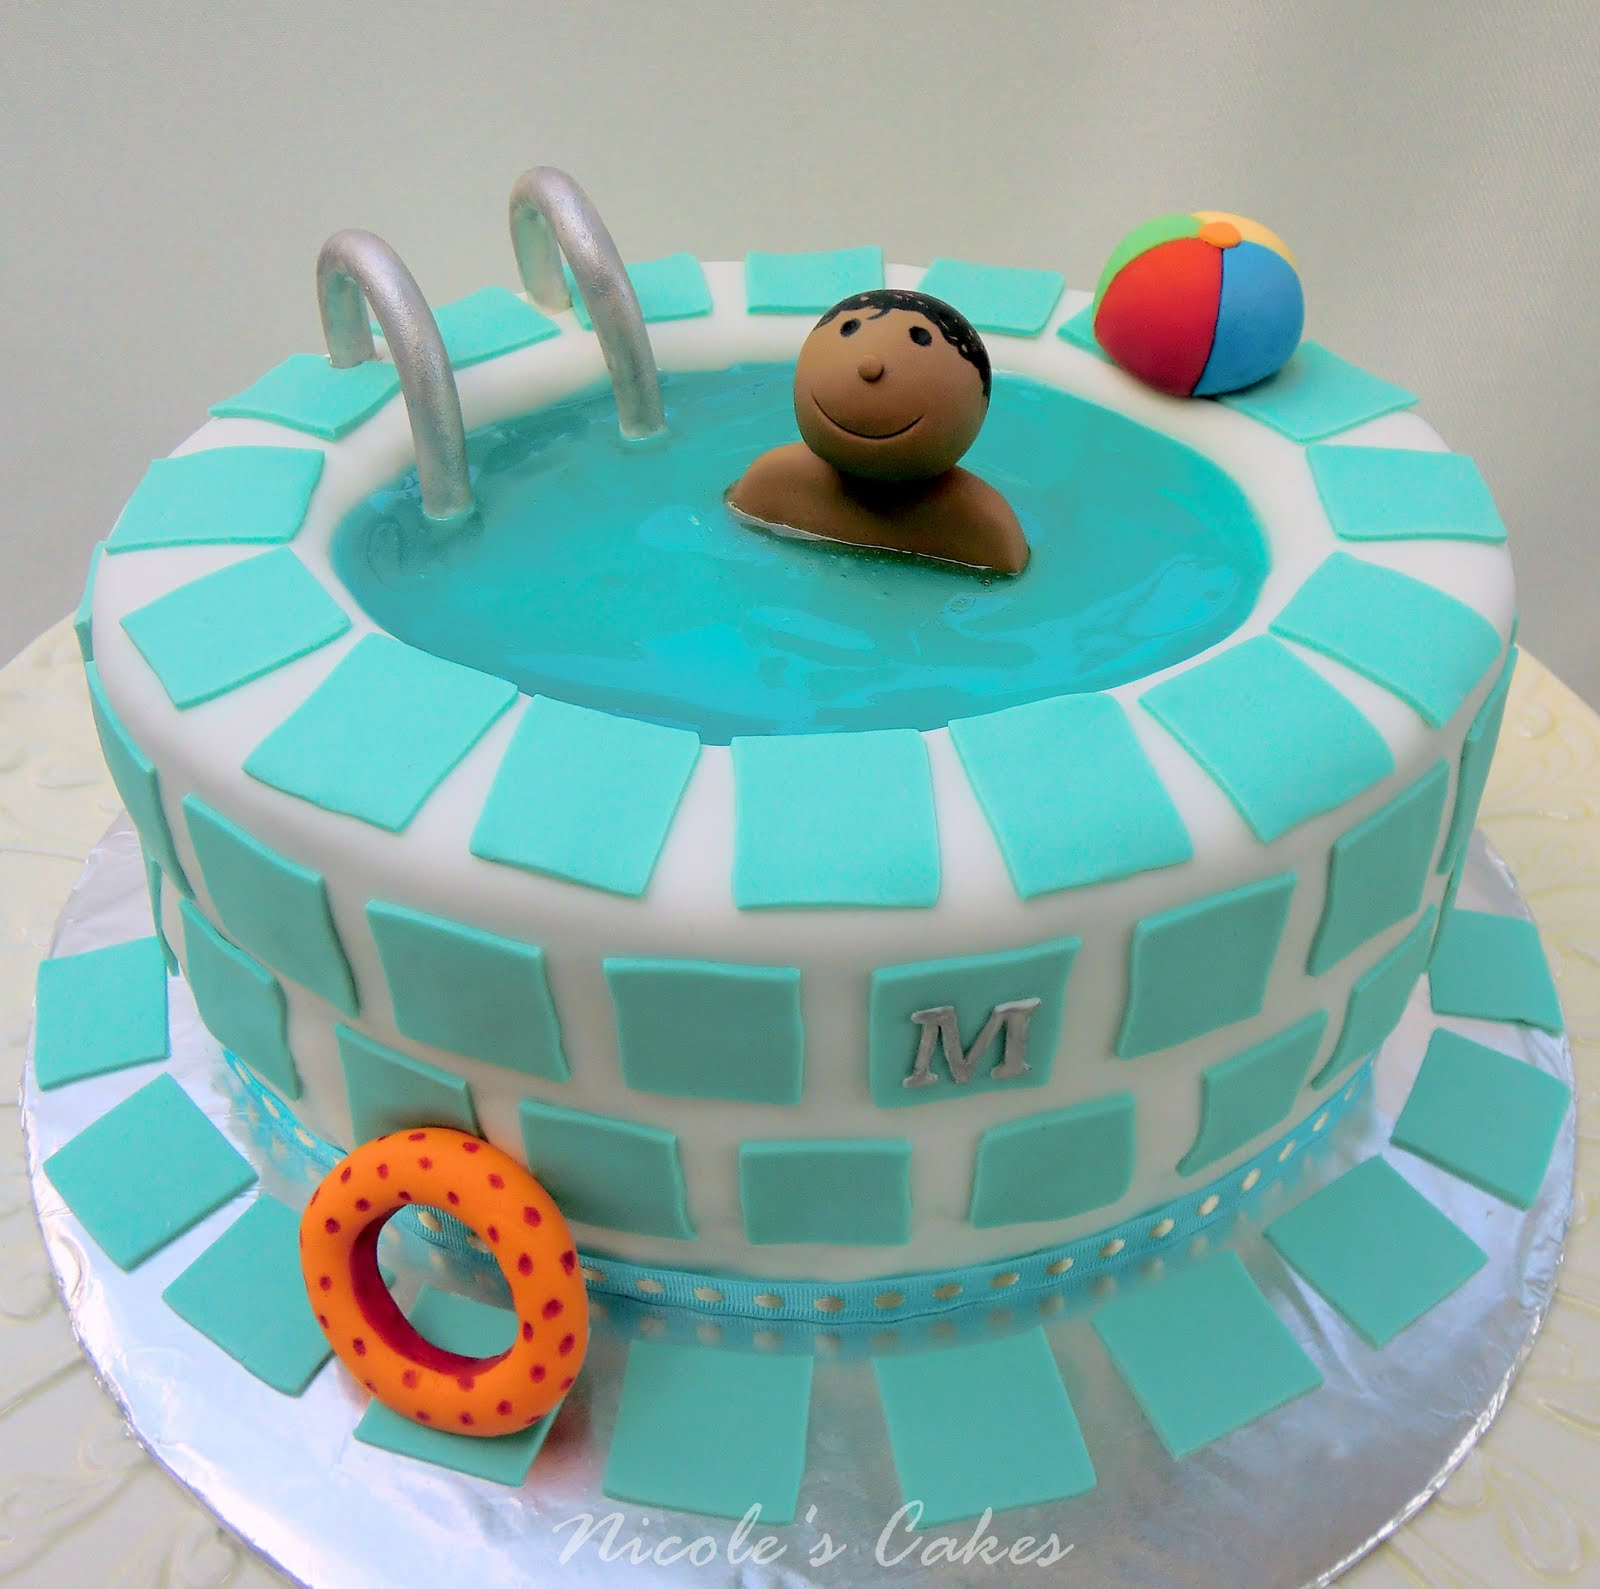 confections cakes creations swimming pool birthday cake